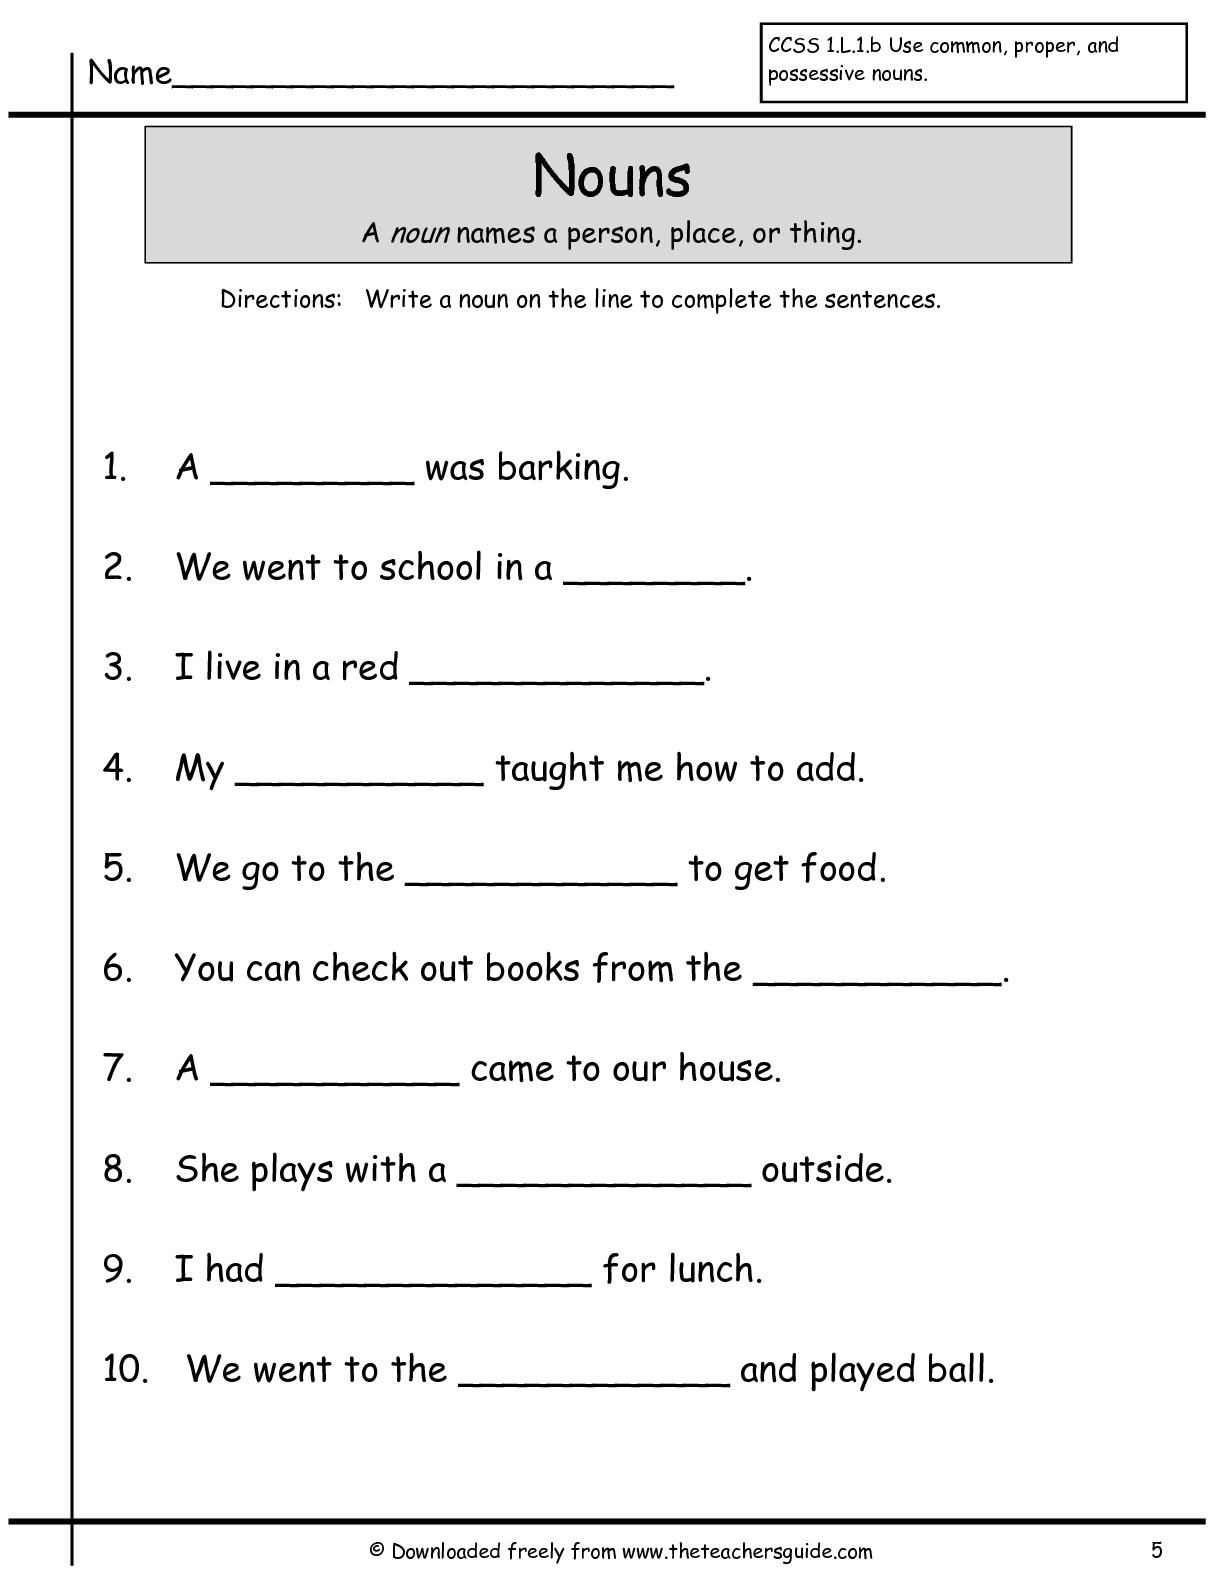 14 Best Images Of Noun Verb Adjective Printable Worksheets